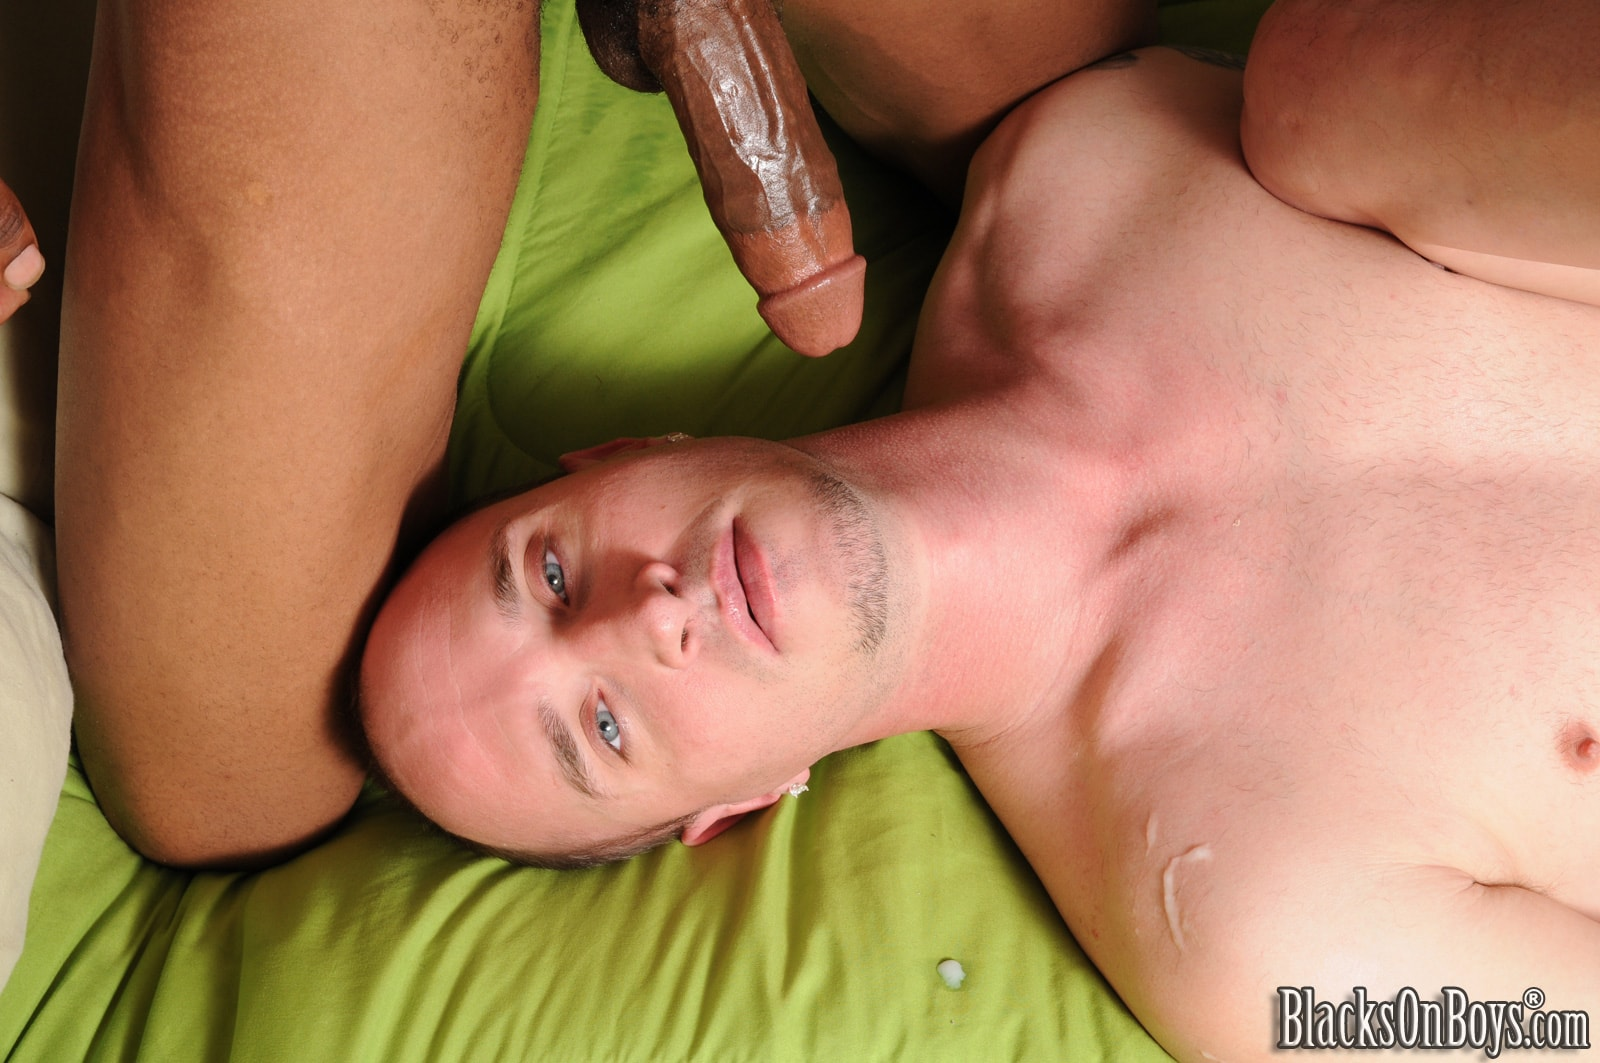 Dogfart Men '- Blacks On Boys' starring Austin (Photo 28)